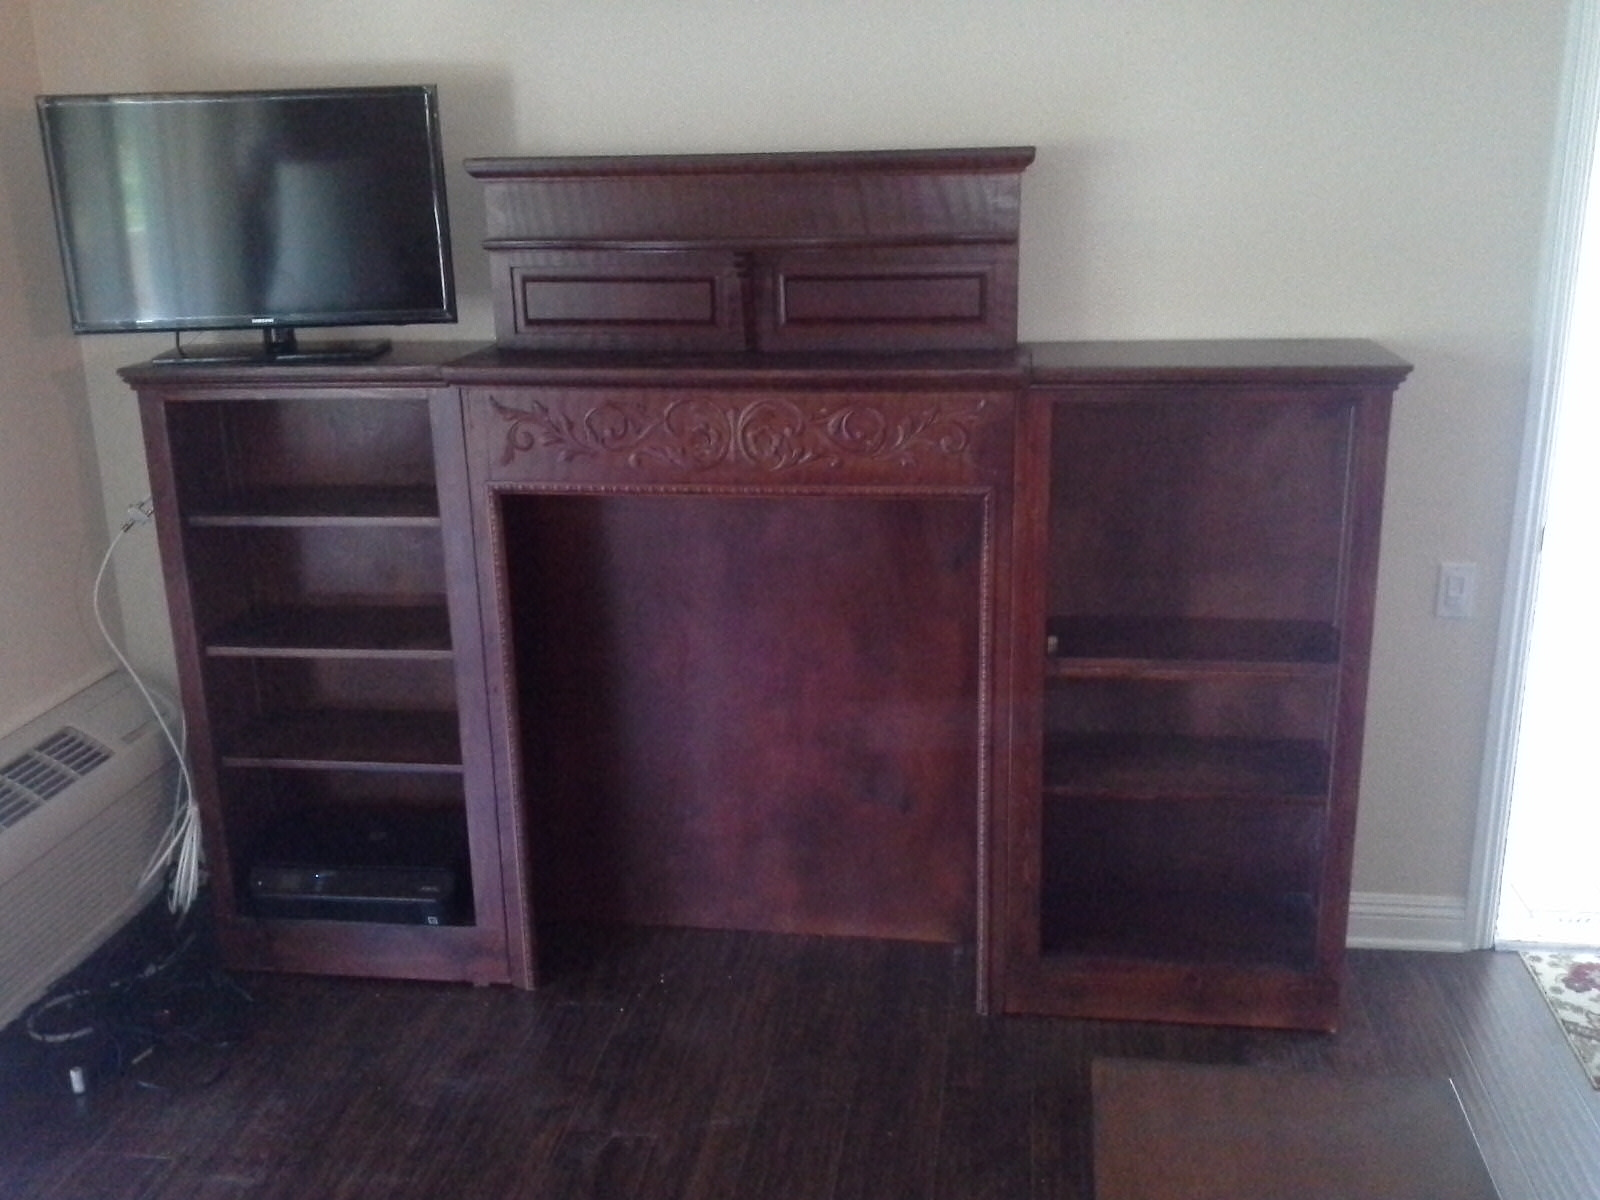 Superb img of Huntington Beach Furniture Repairs Wood Refinishing Huntington Beach  with #5B3845 color and 1600x1200 pixels